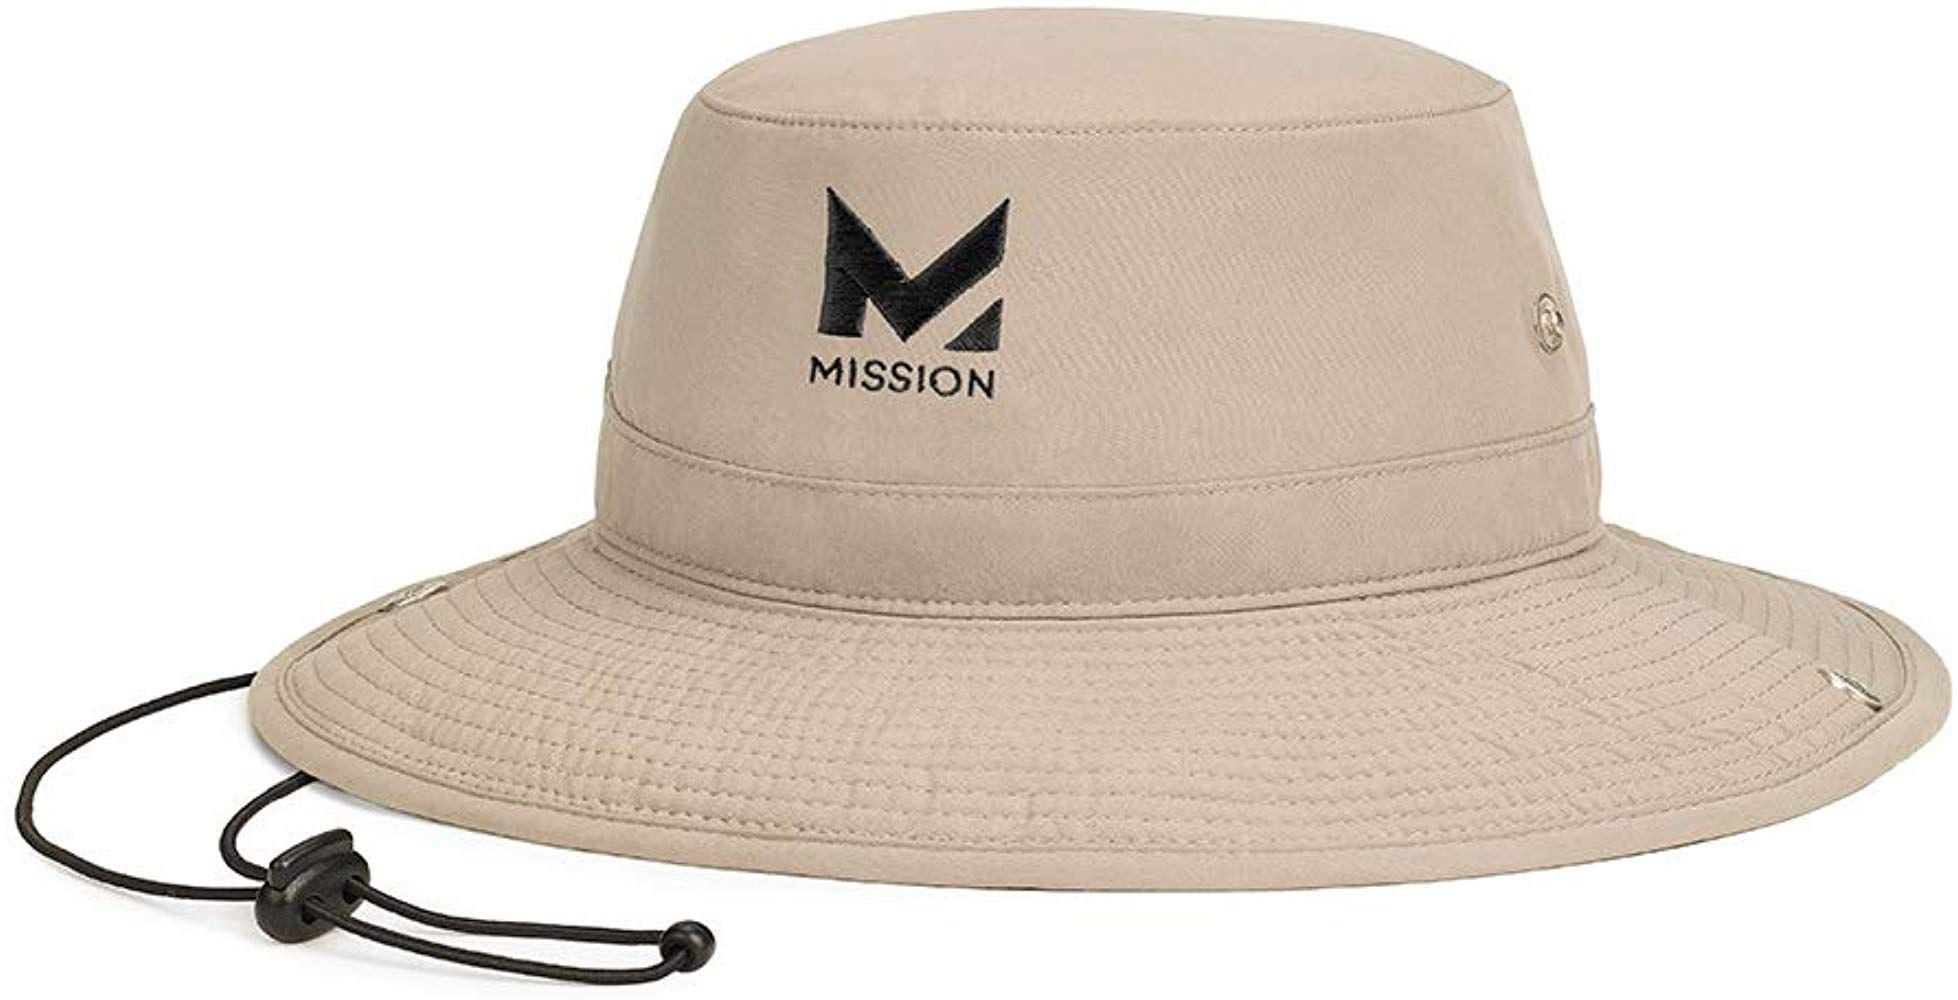 Mission Cooling Bucket Hat Khaki